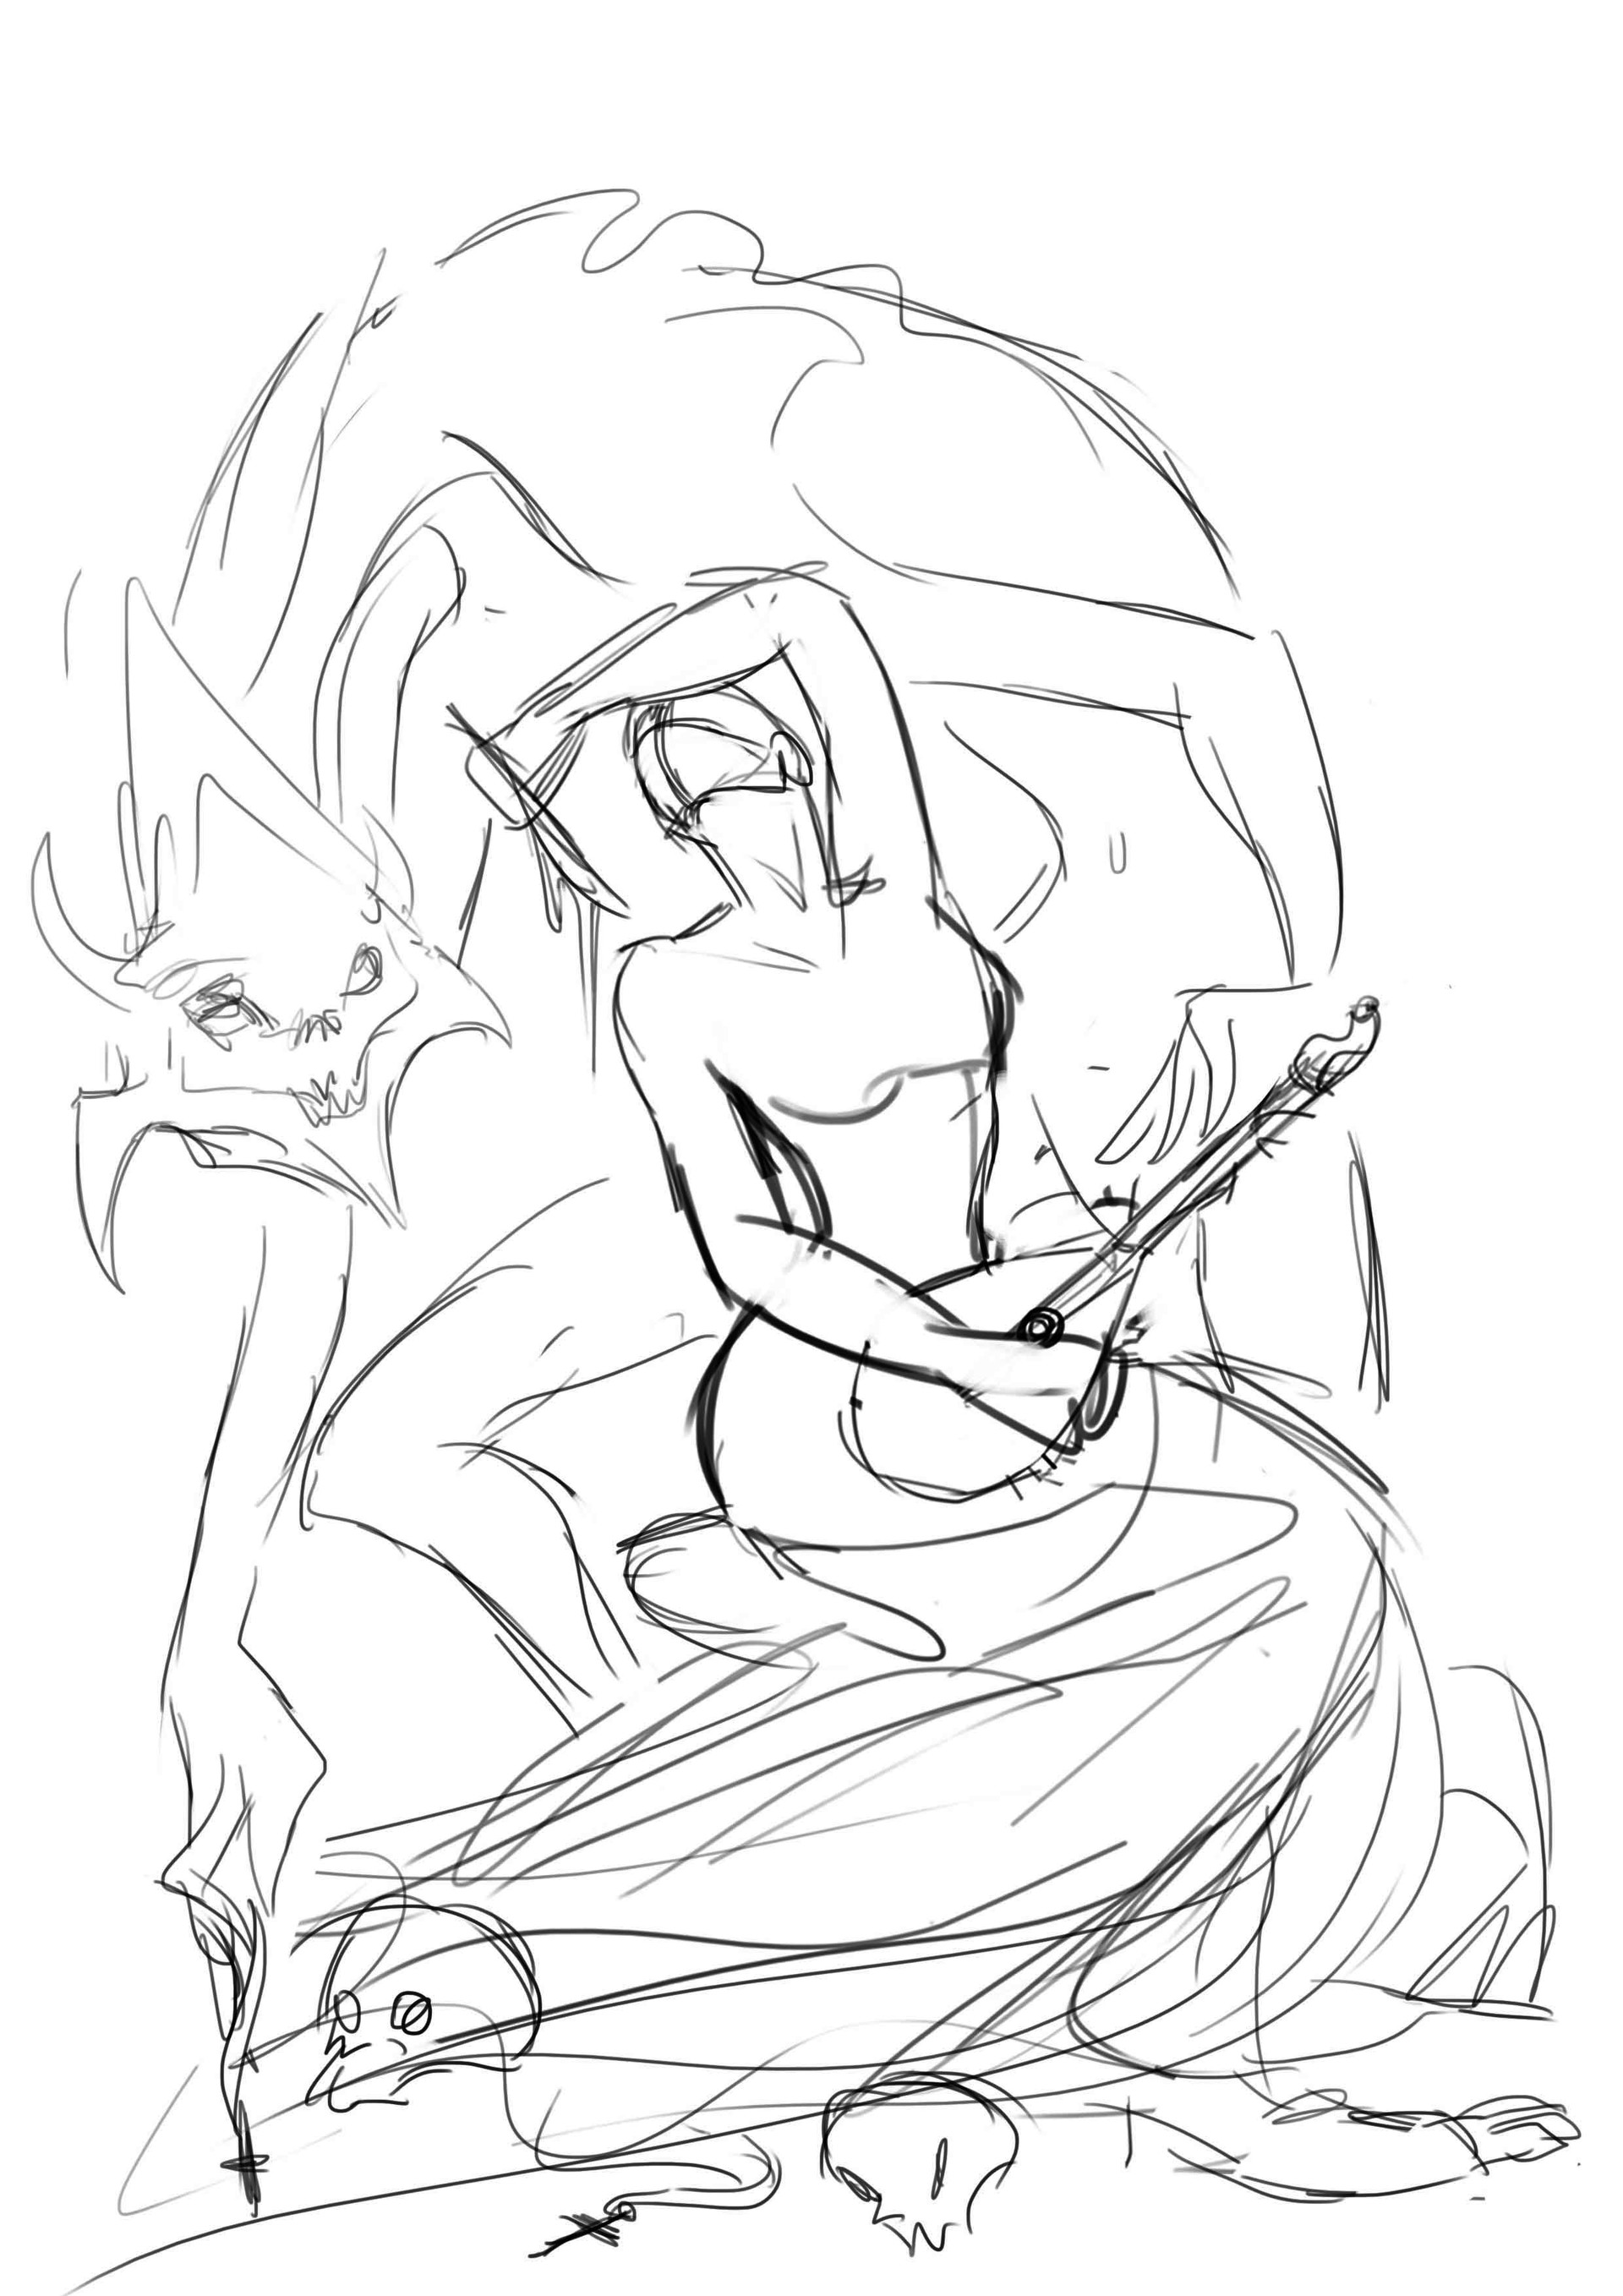 Shellz art the cittern player wip 4 5